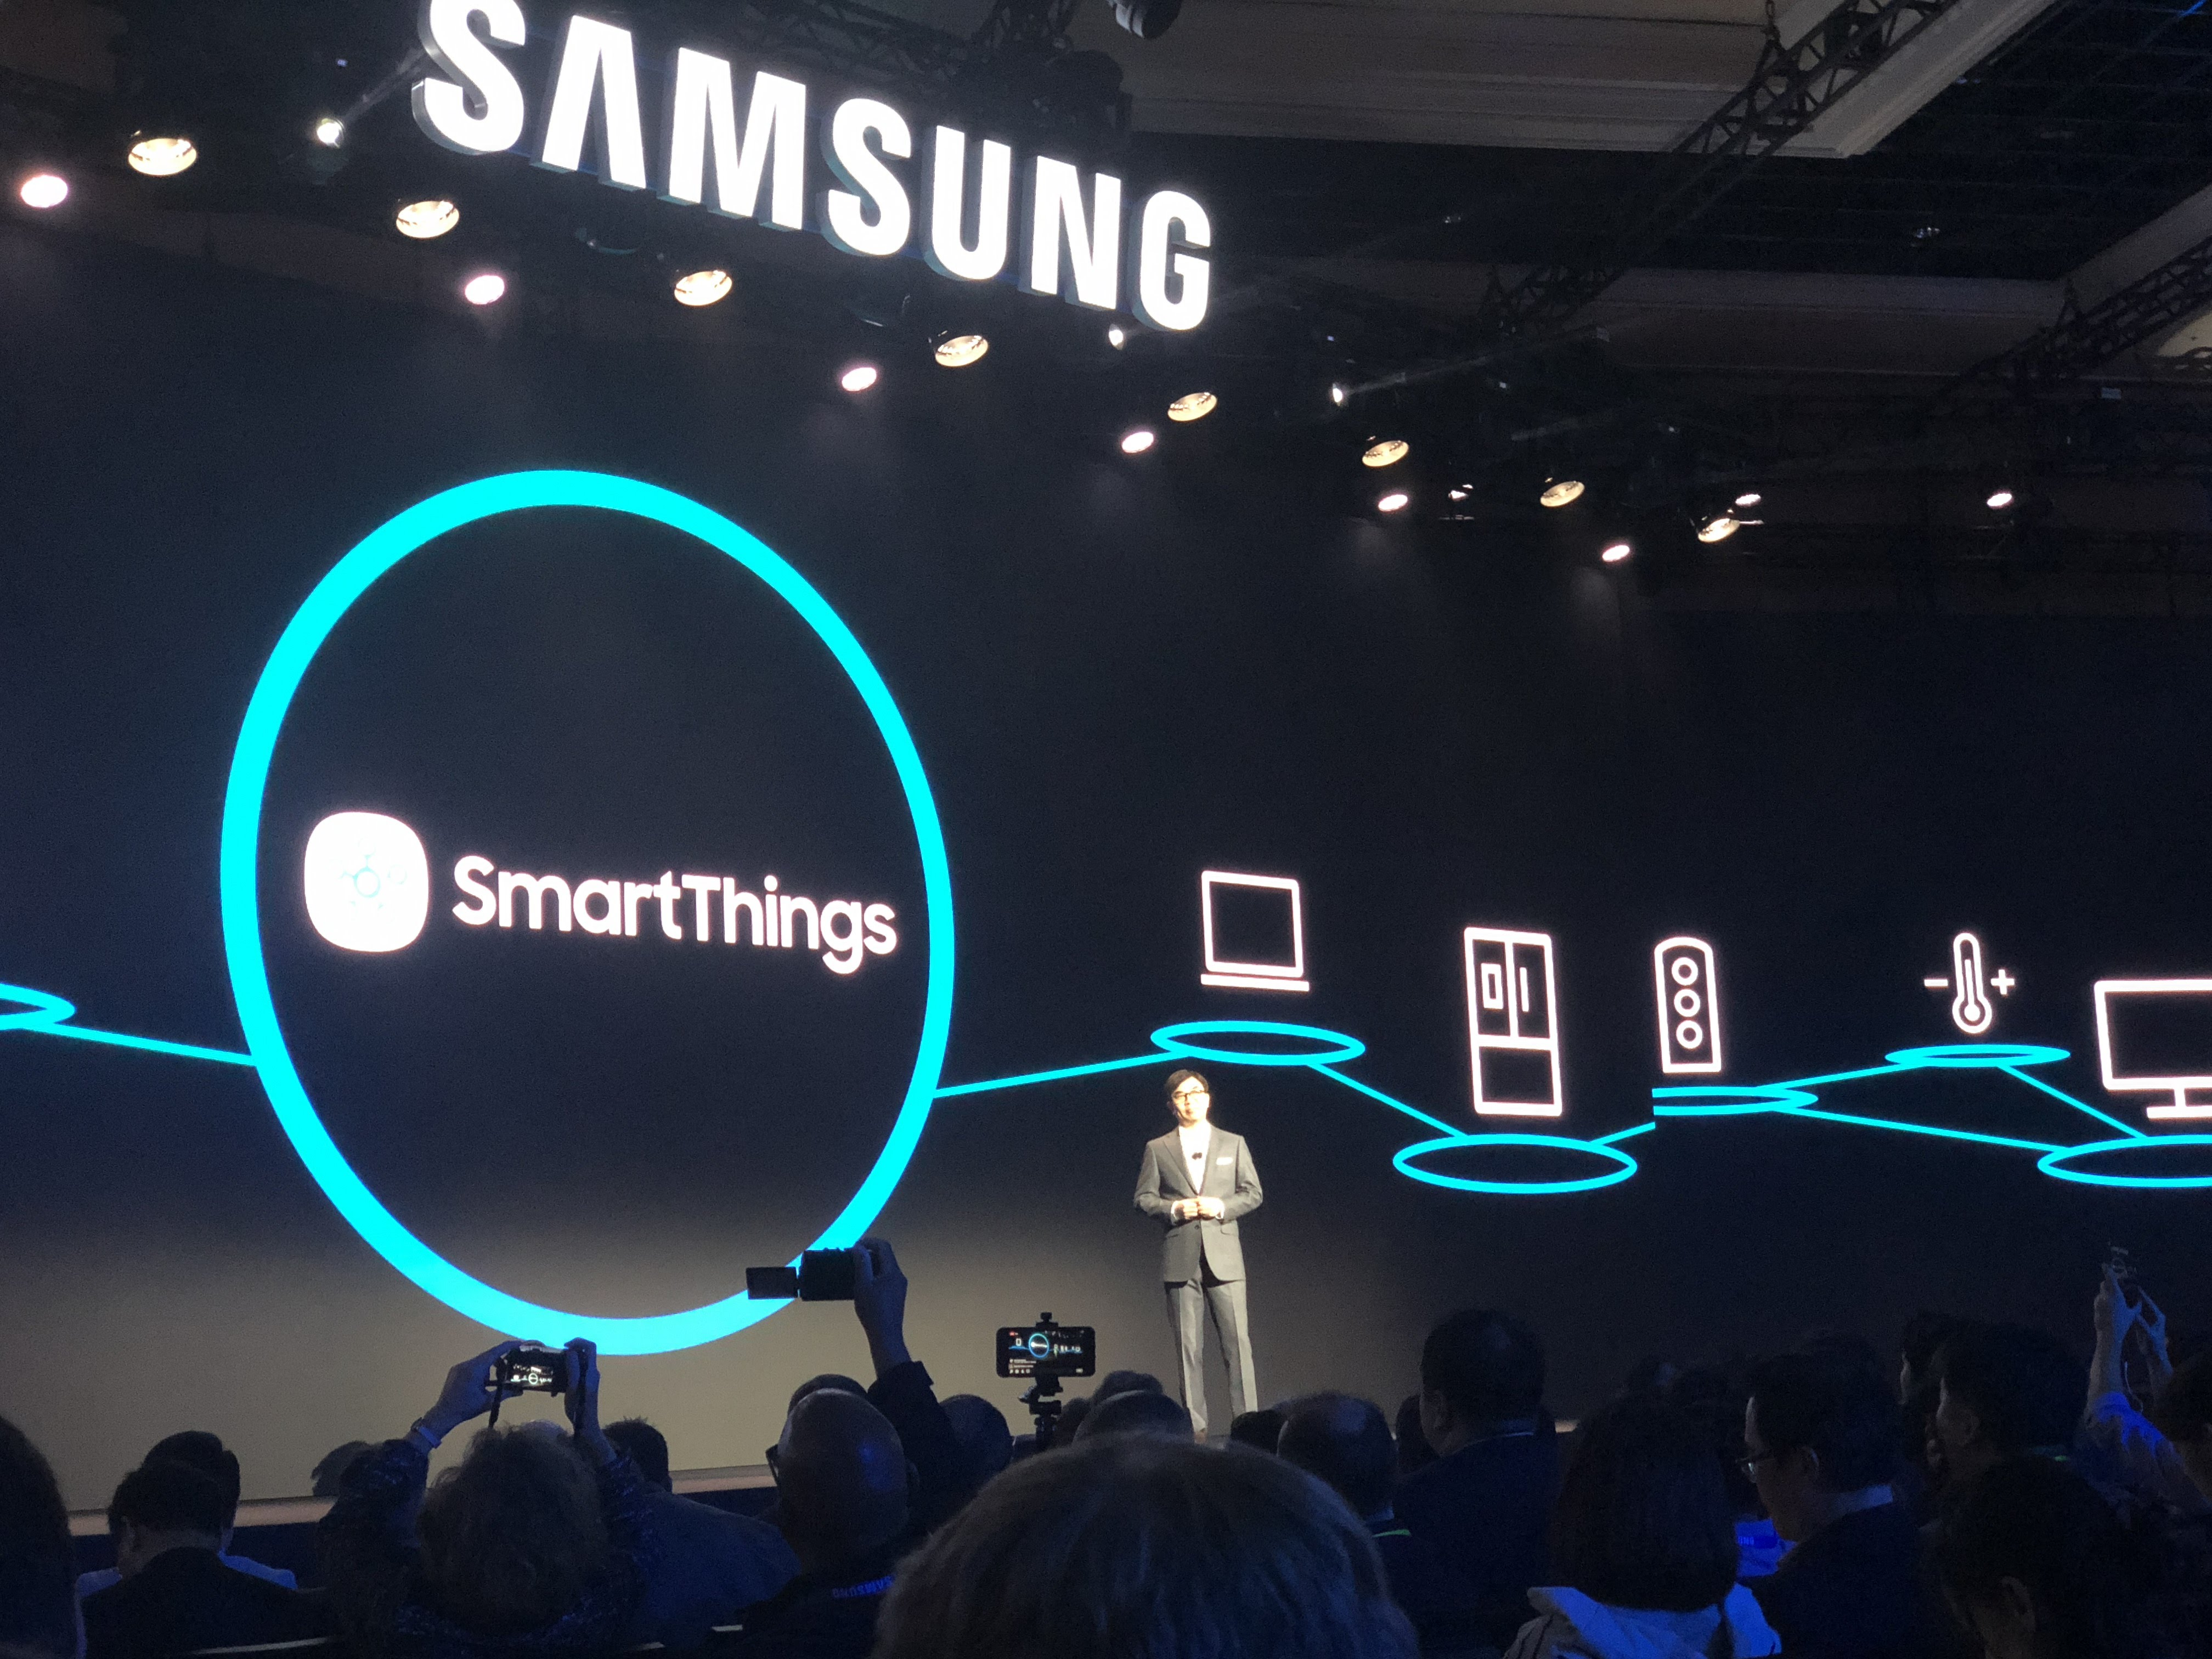 - Samsung SmartThings Bixby CES 2018 - We need a standards-based solution for smart home device and automation backups – Stacey on IoT